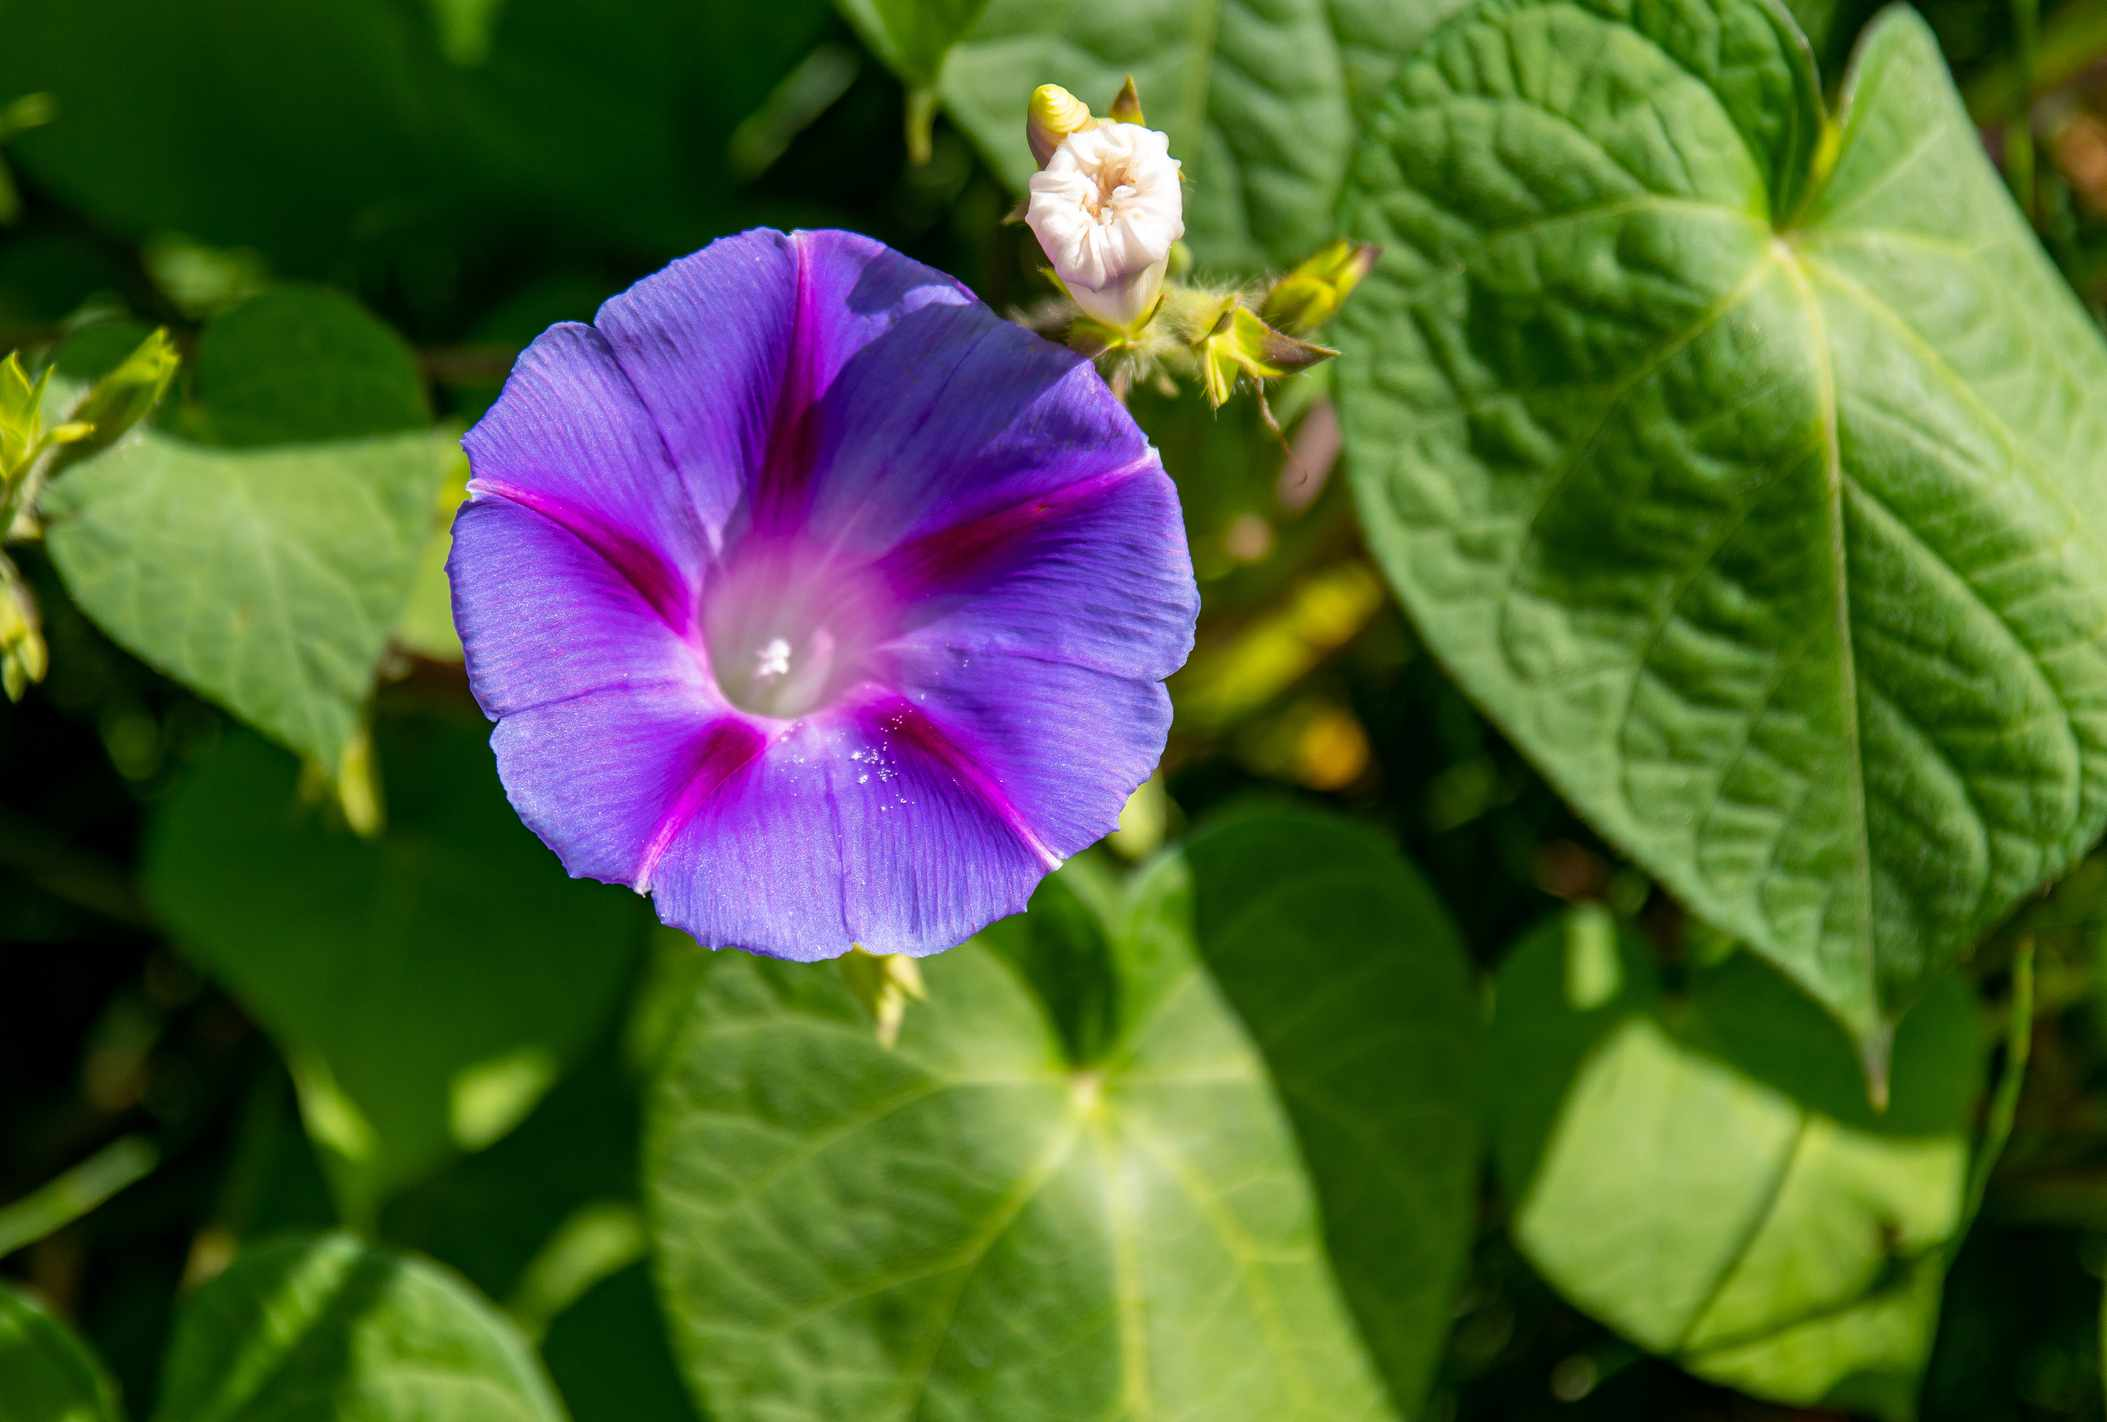 Close-up of a purple morning glory and green leaves